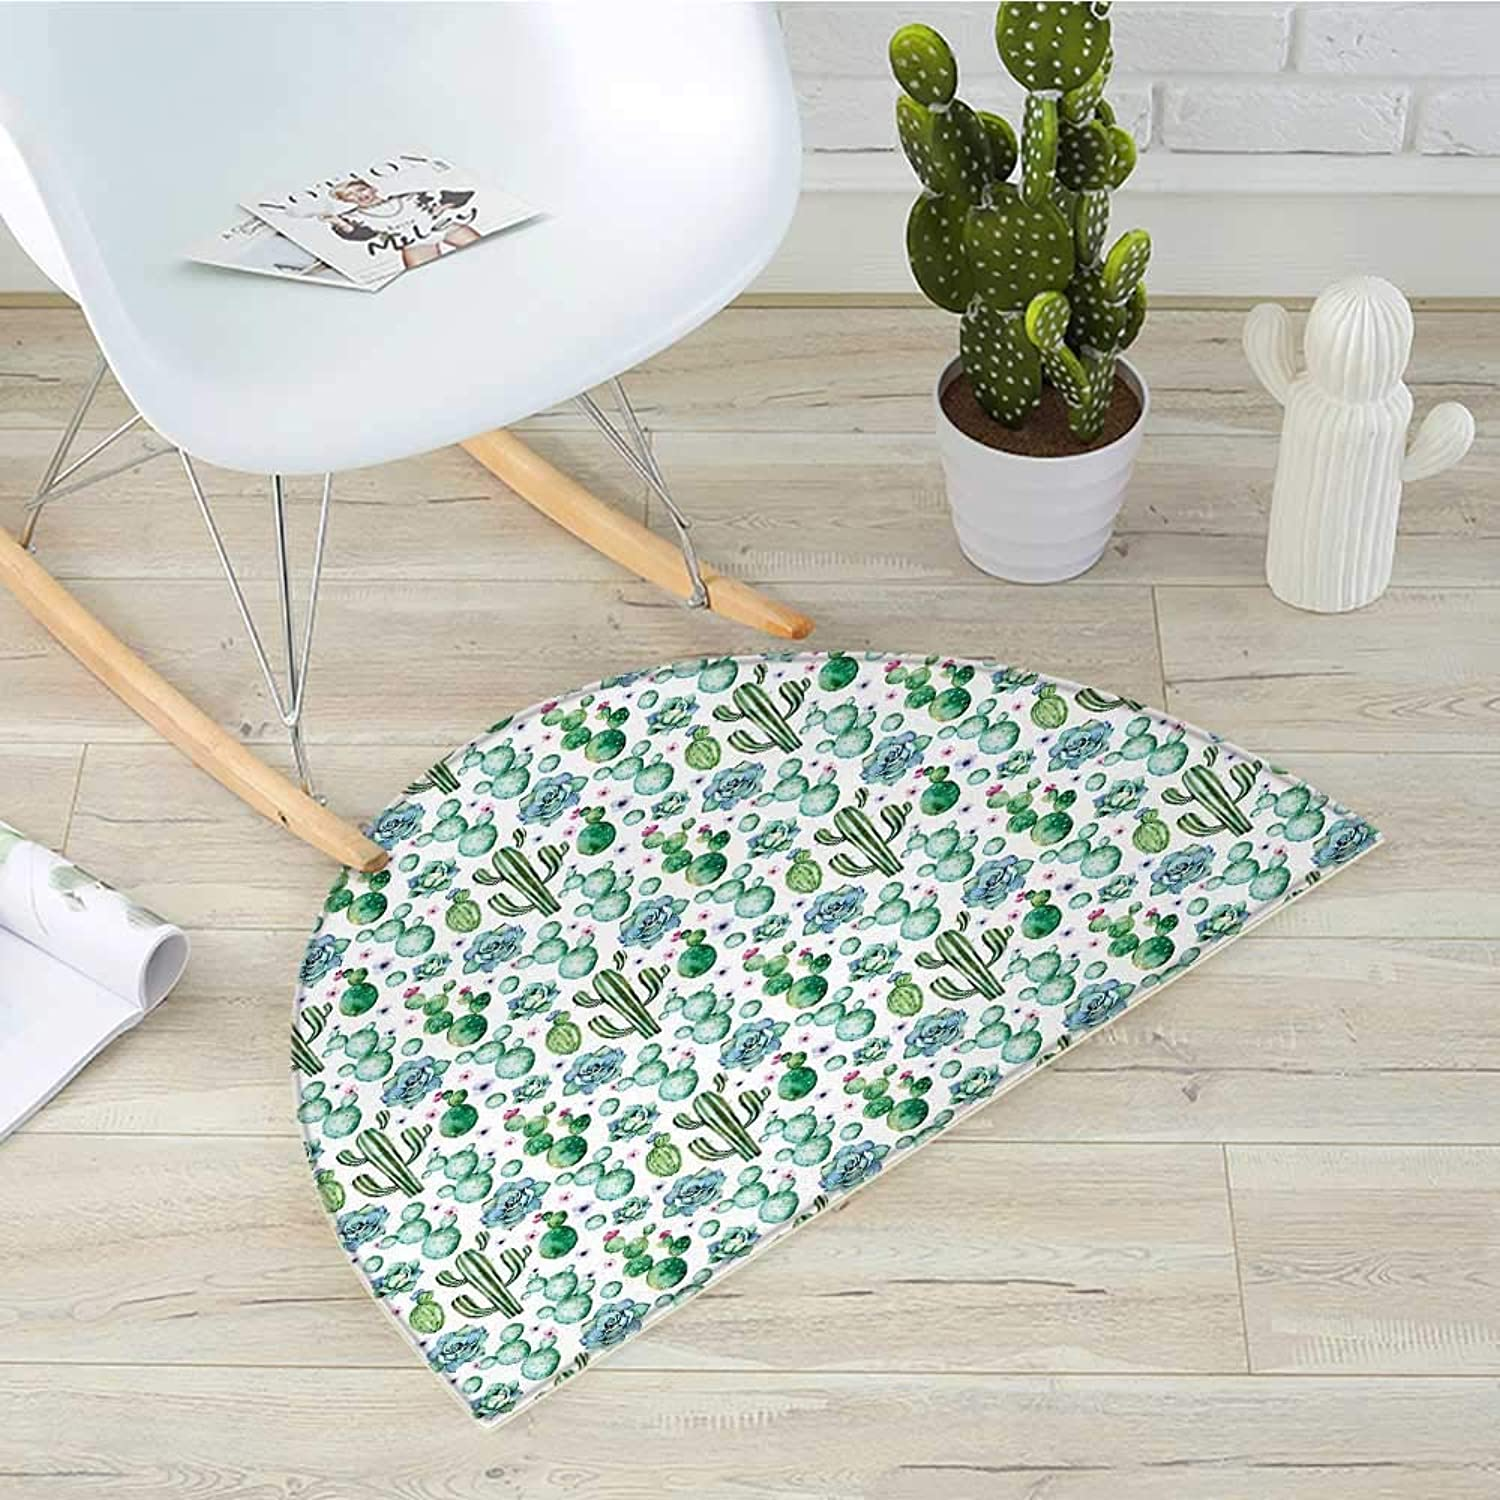 Cactus Semicircle Doormat Hand Painted Style Exotic Plant Collection Saguaro Prickly Pear Succulents Spikes Halfmoon doormats H 31.5  xD 47.2  Multicolor